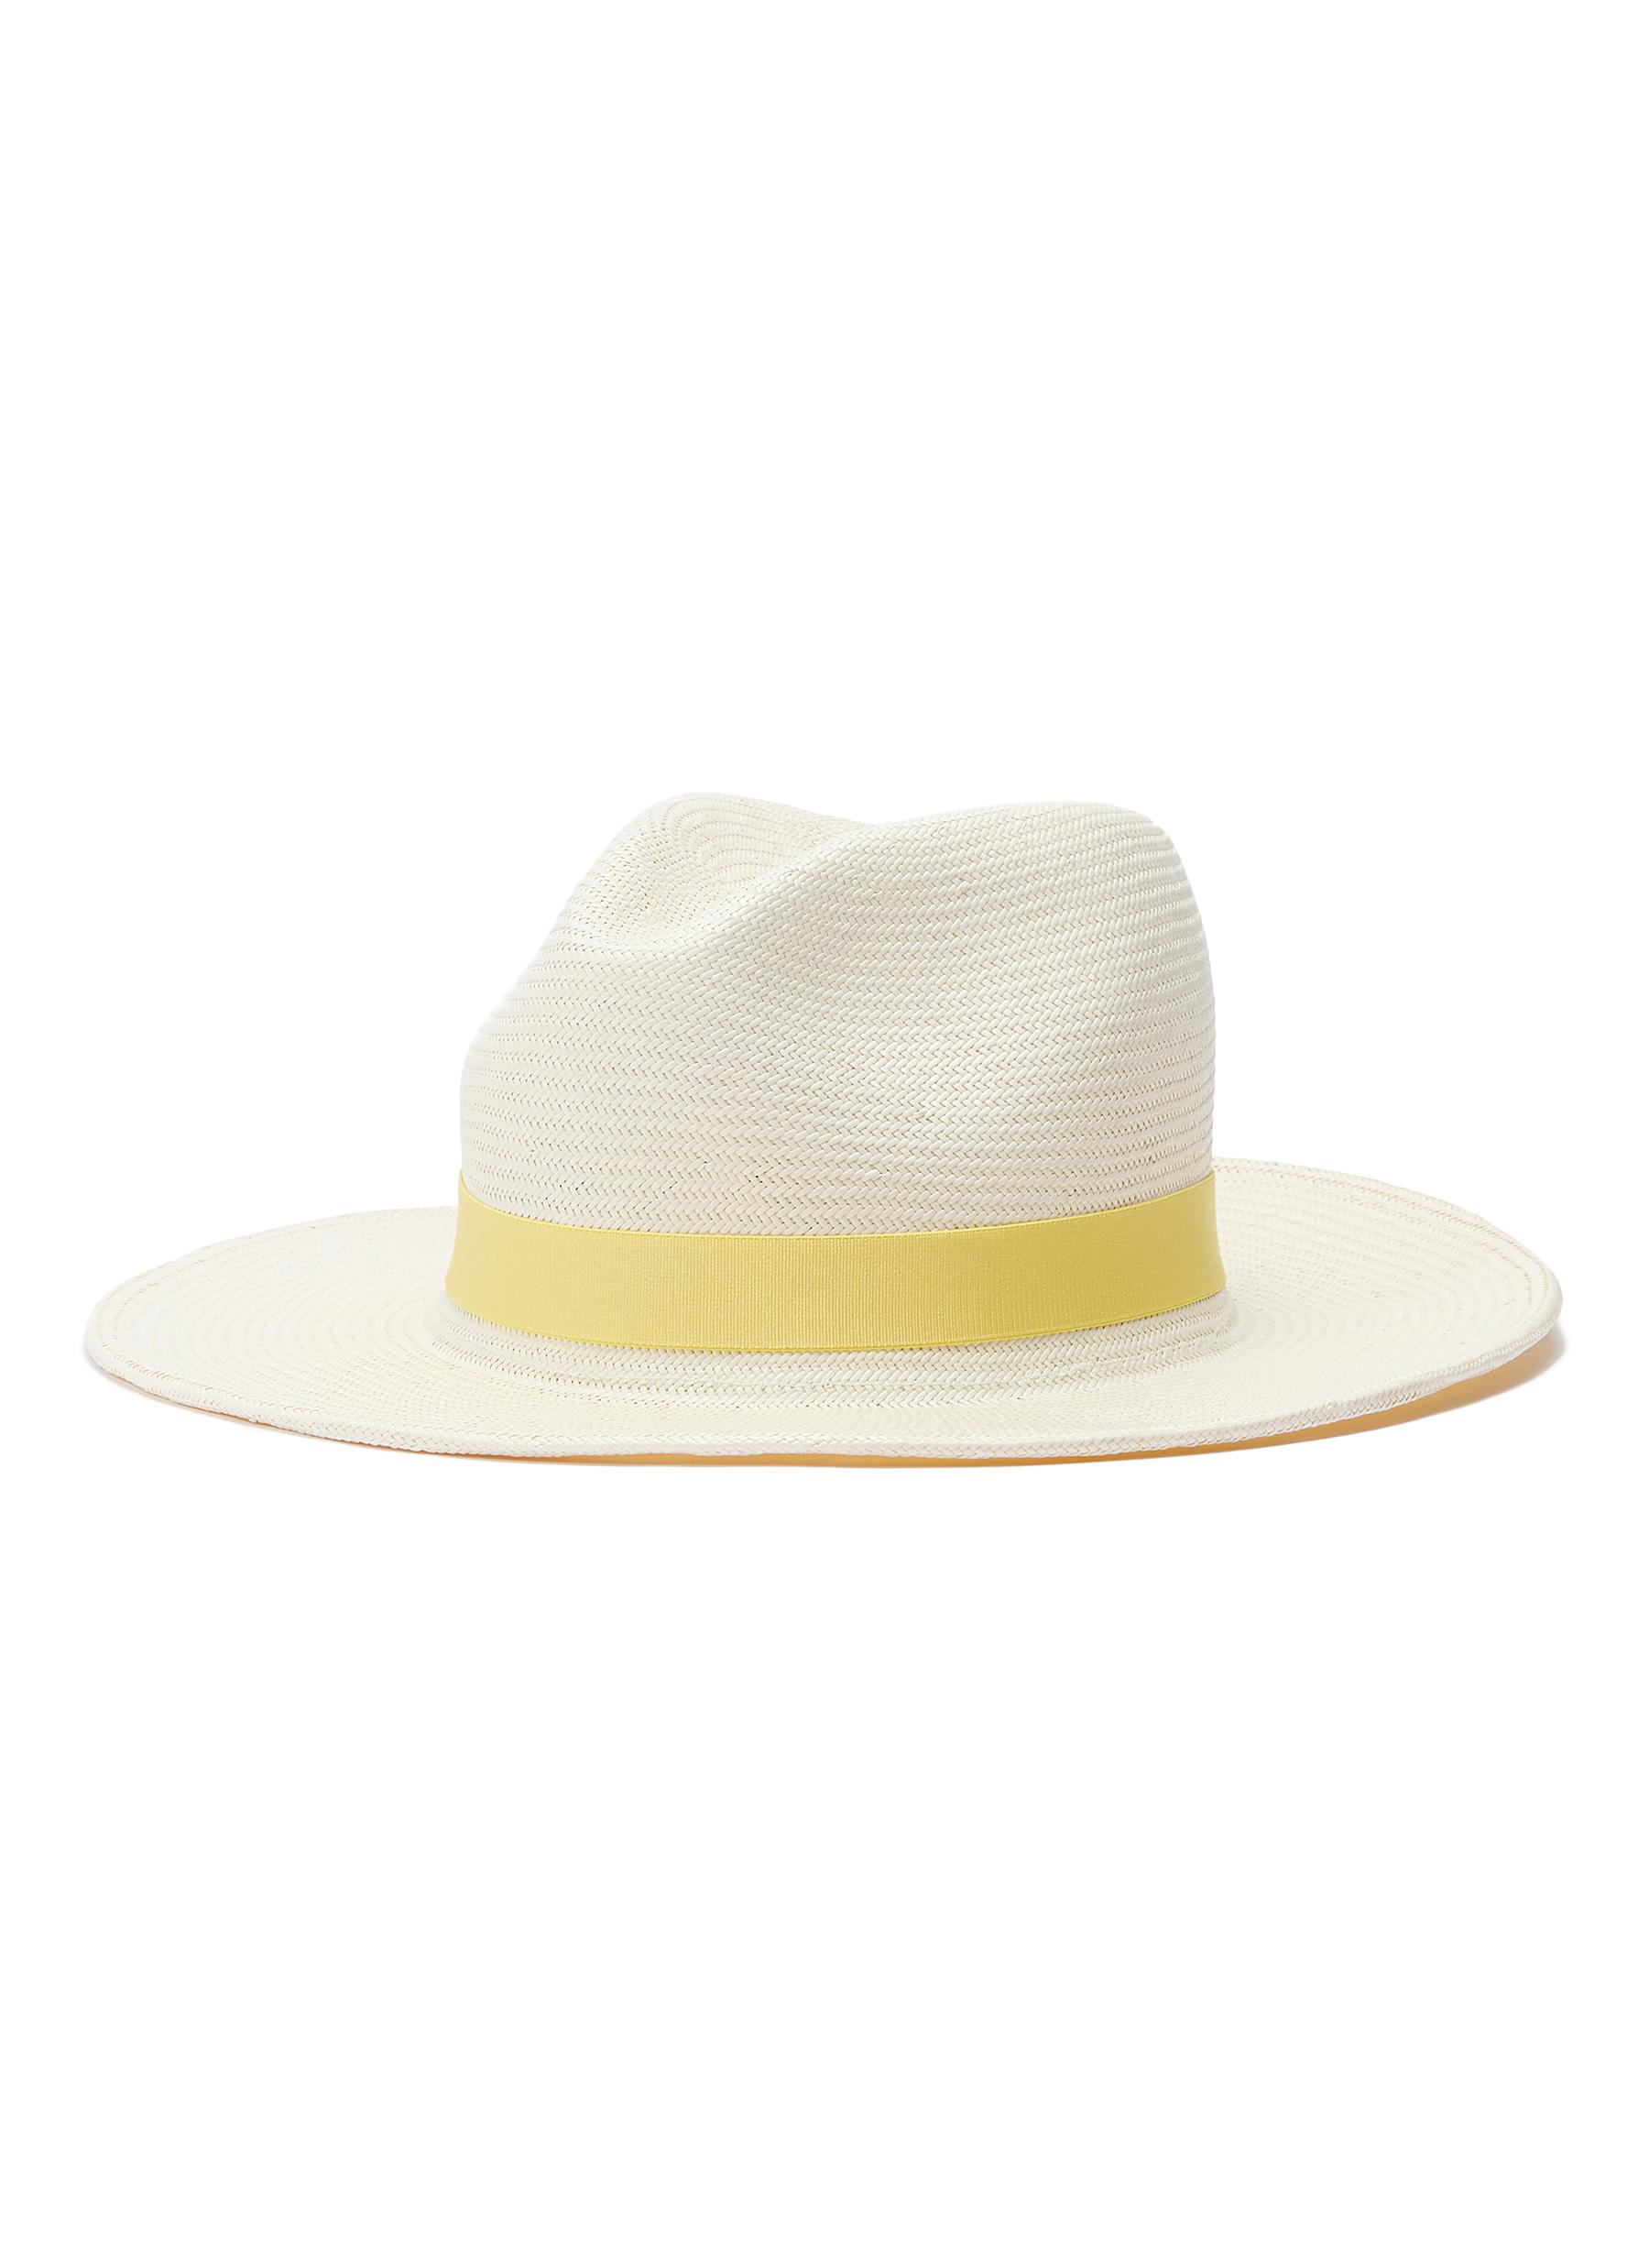 94f5e15448aaa4 Main View - Click To Enlarge - Yestadt - 'Nomad' packable straw fedora hat